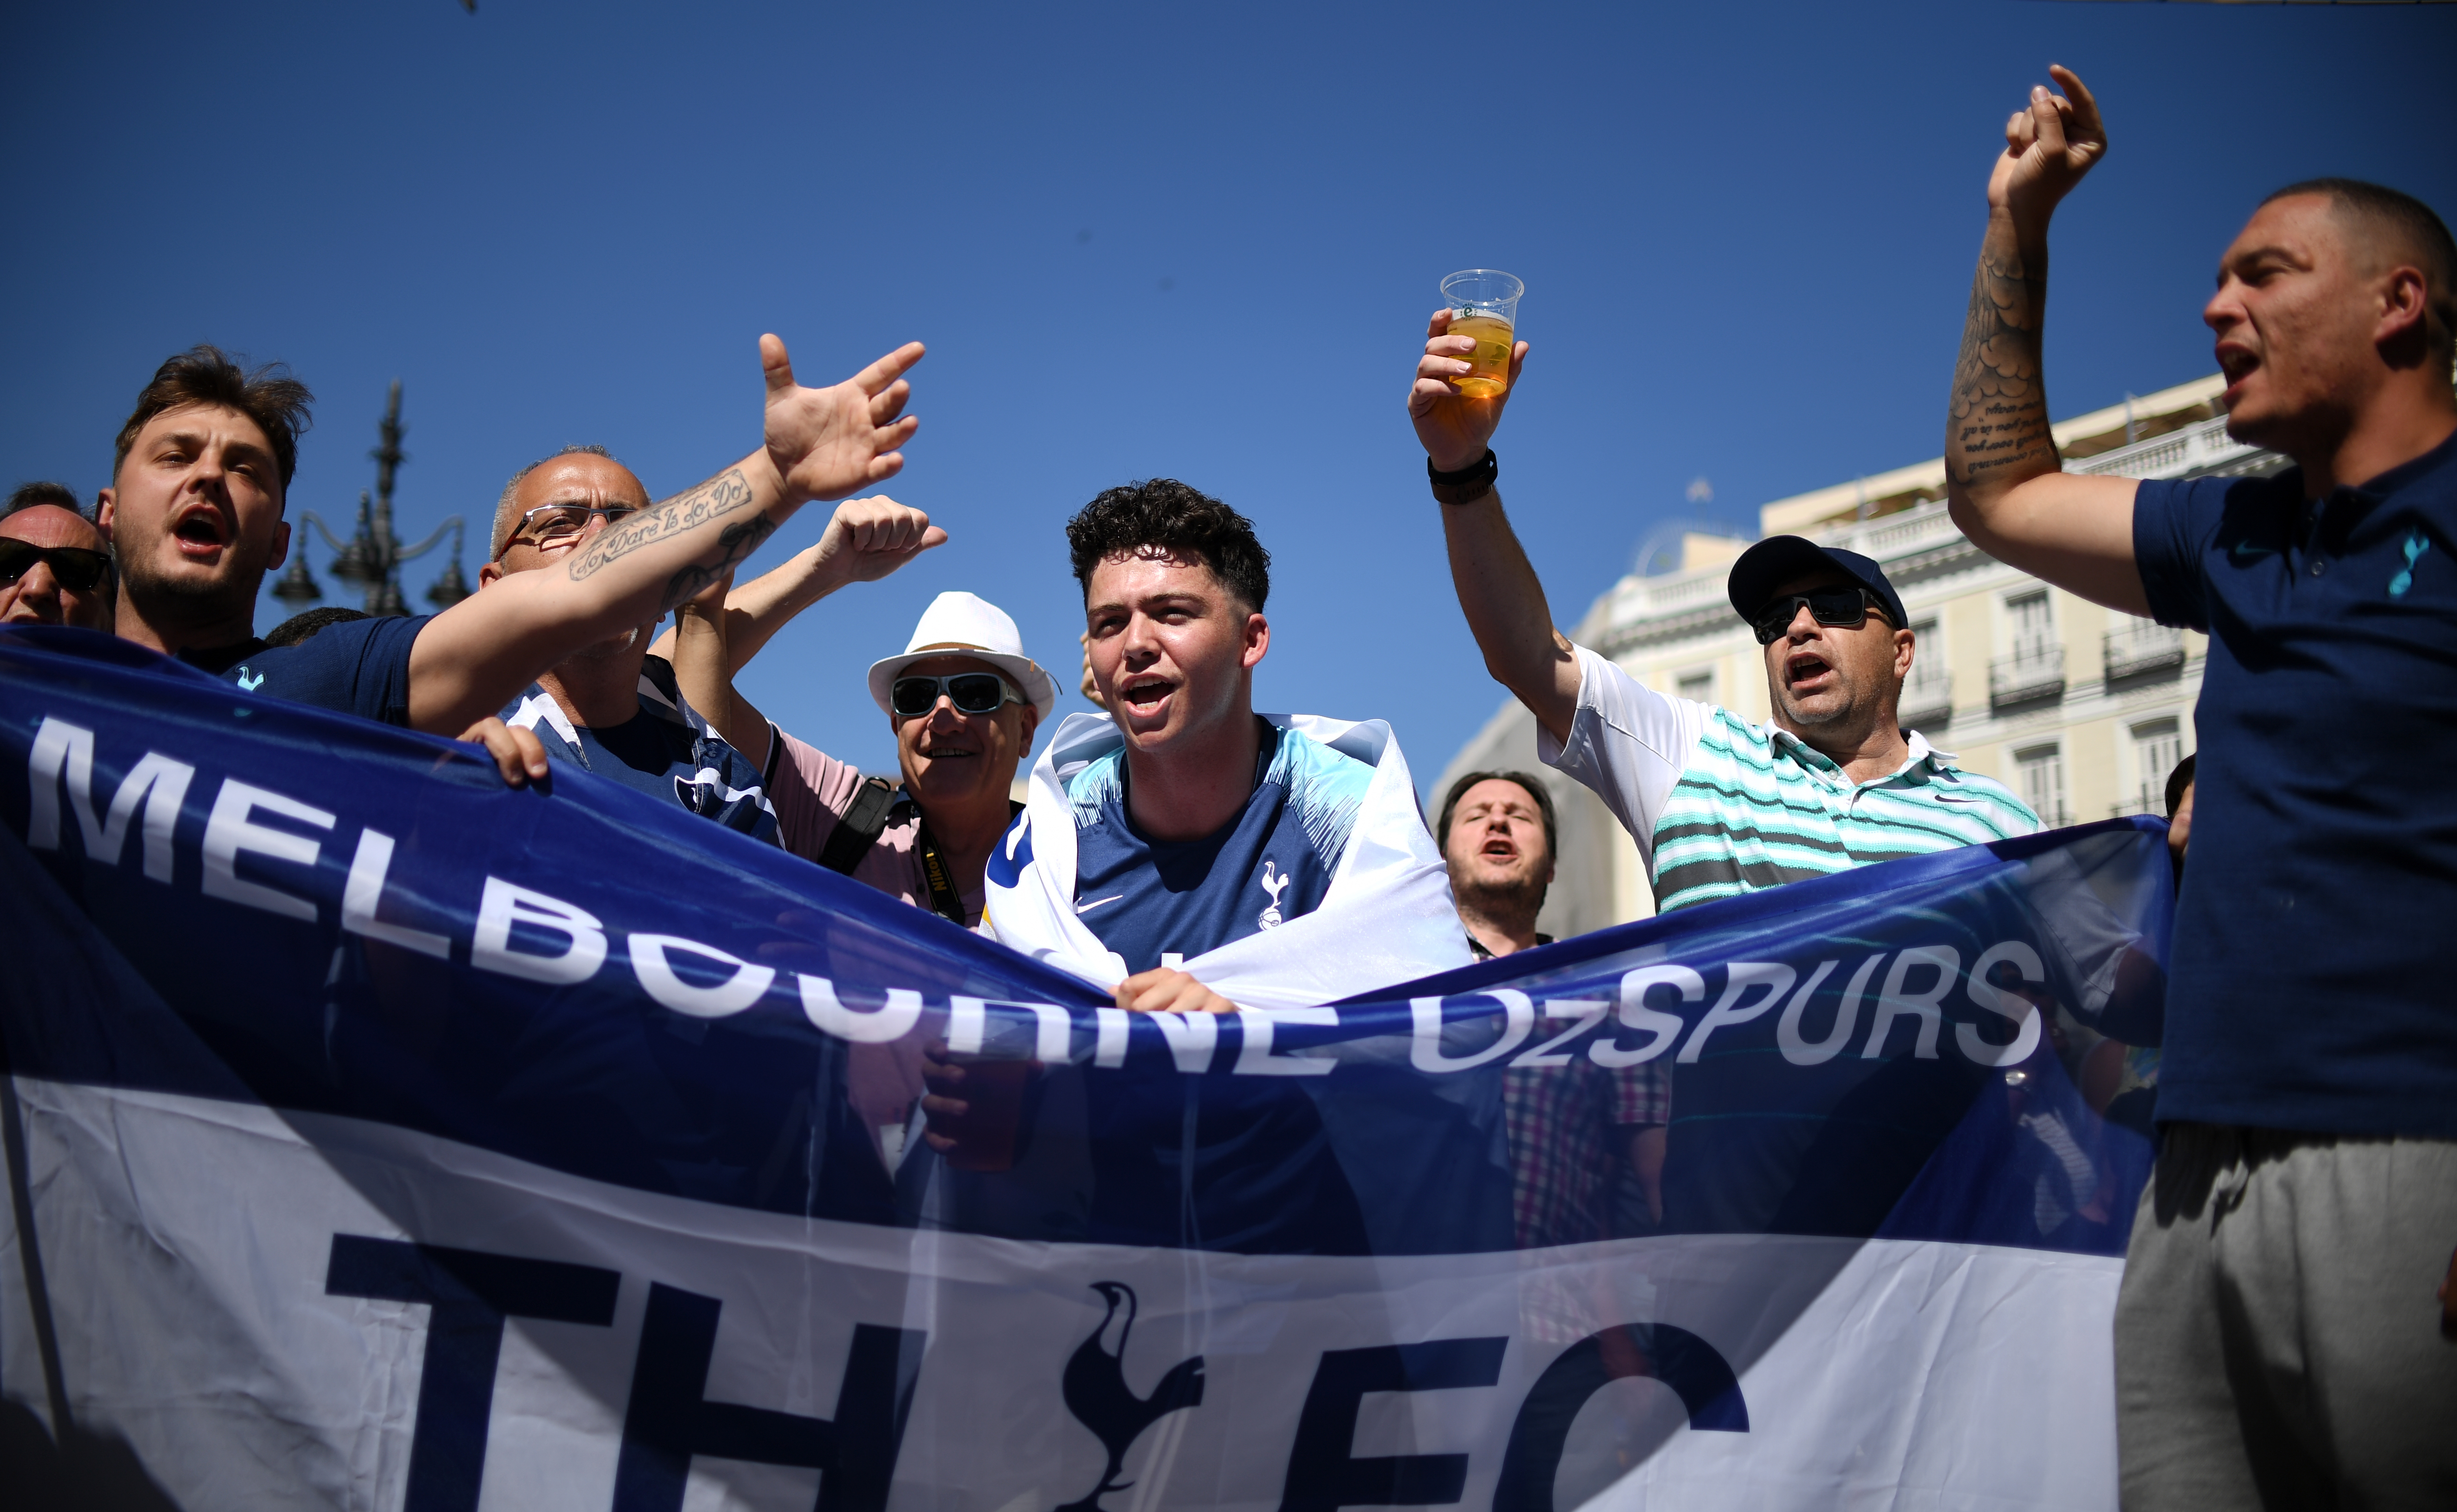 Tottenham fans are also in good spirits